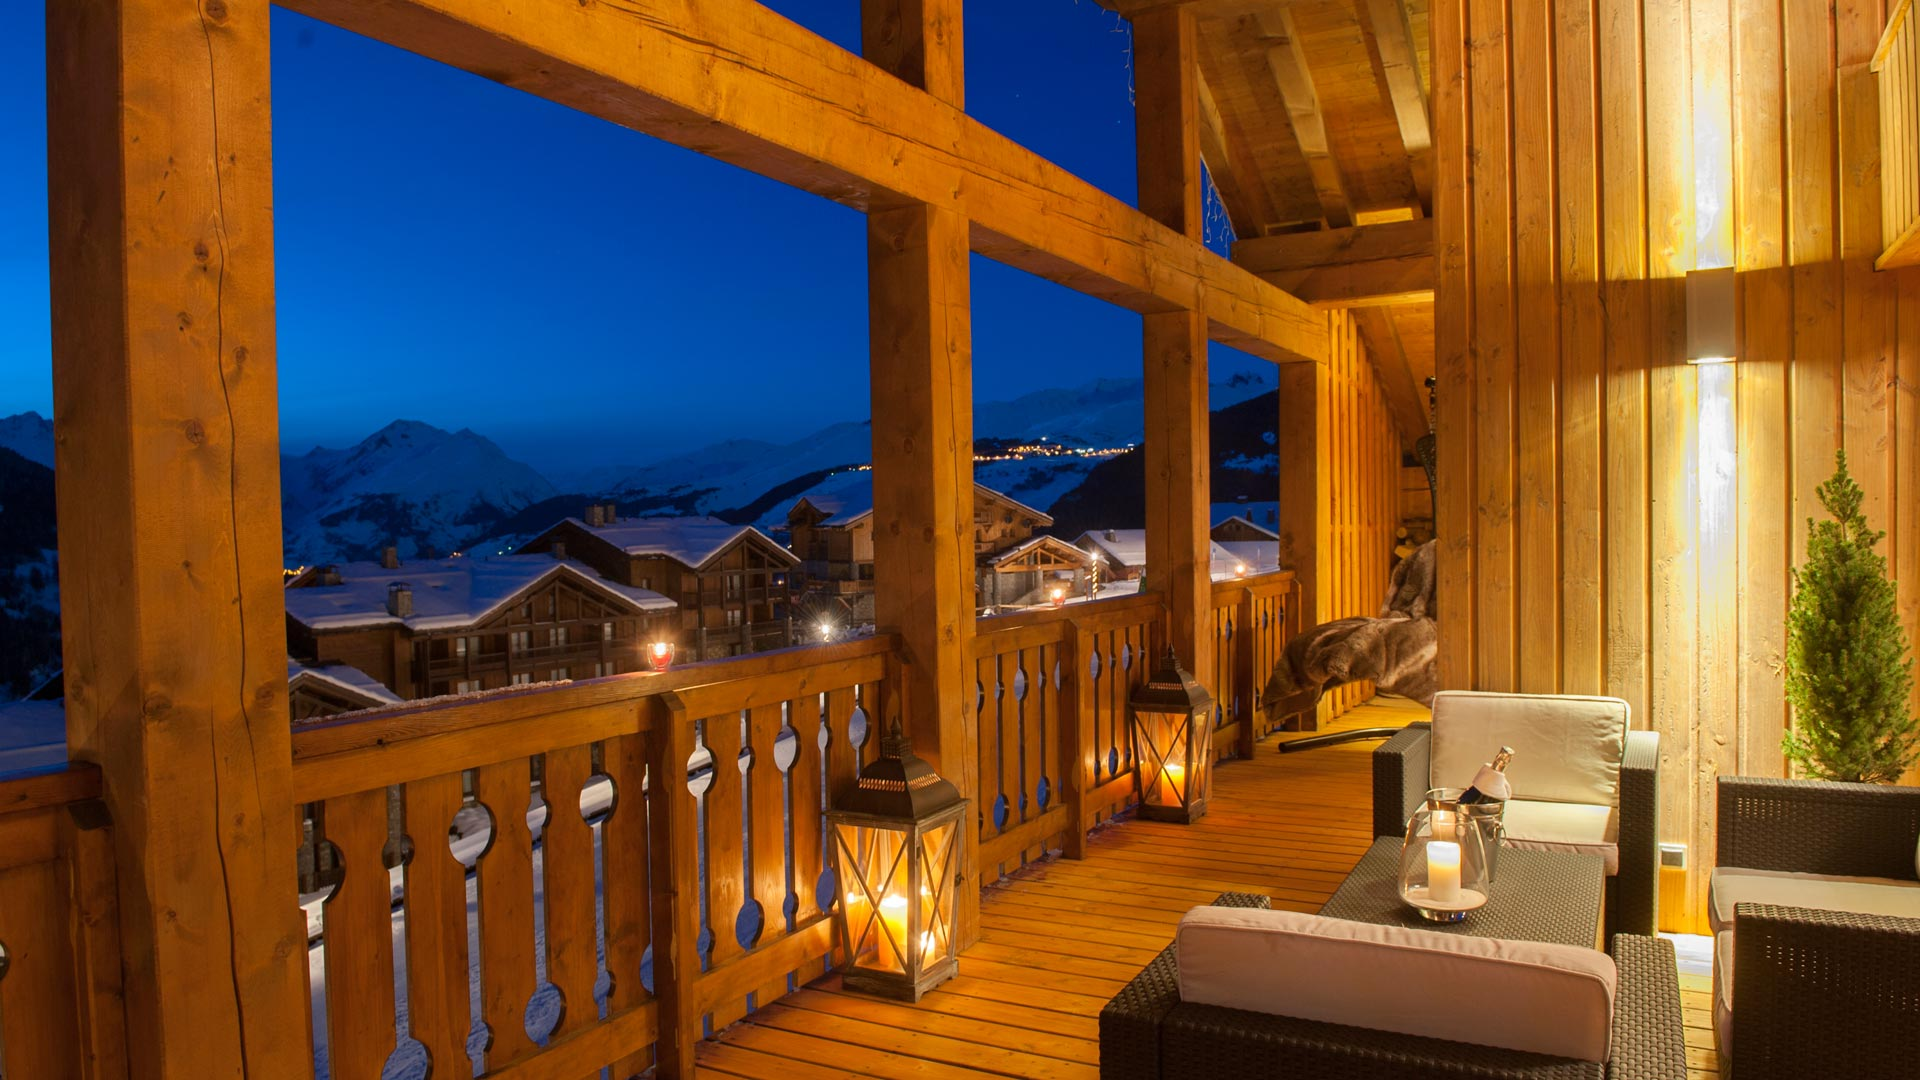 Balcony in The Peak Chalet in Ste Foy